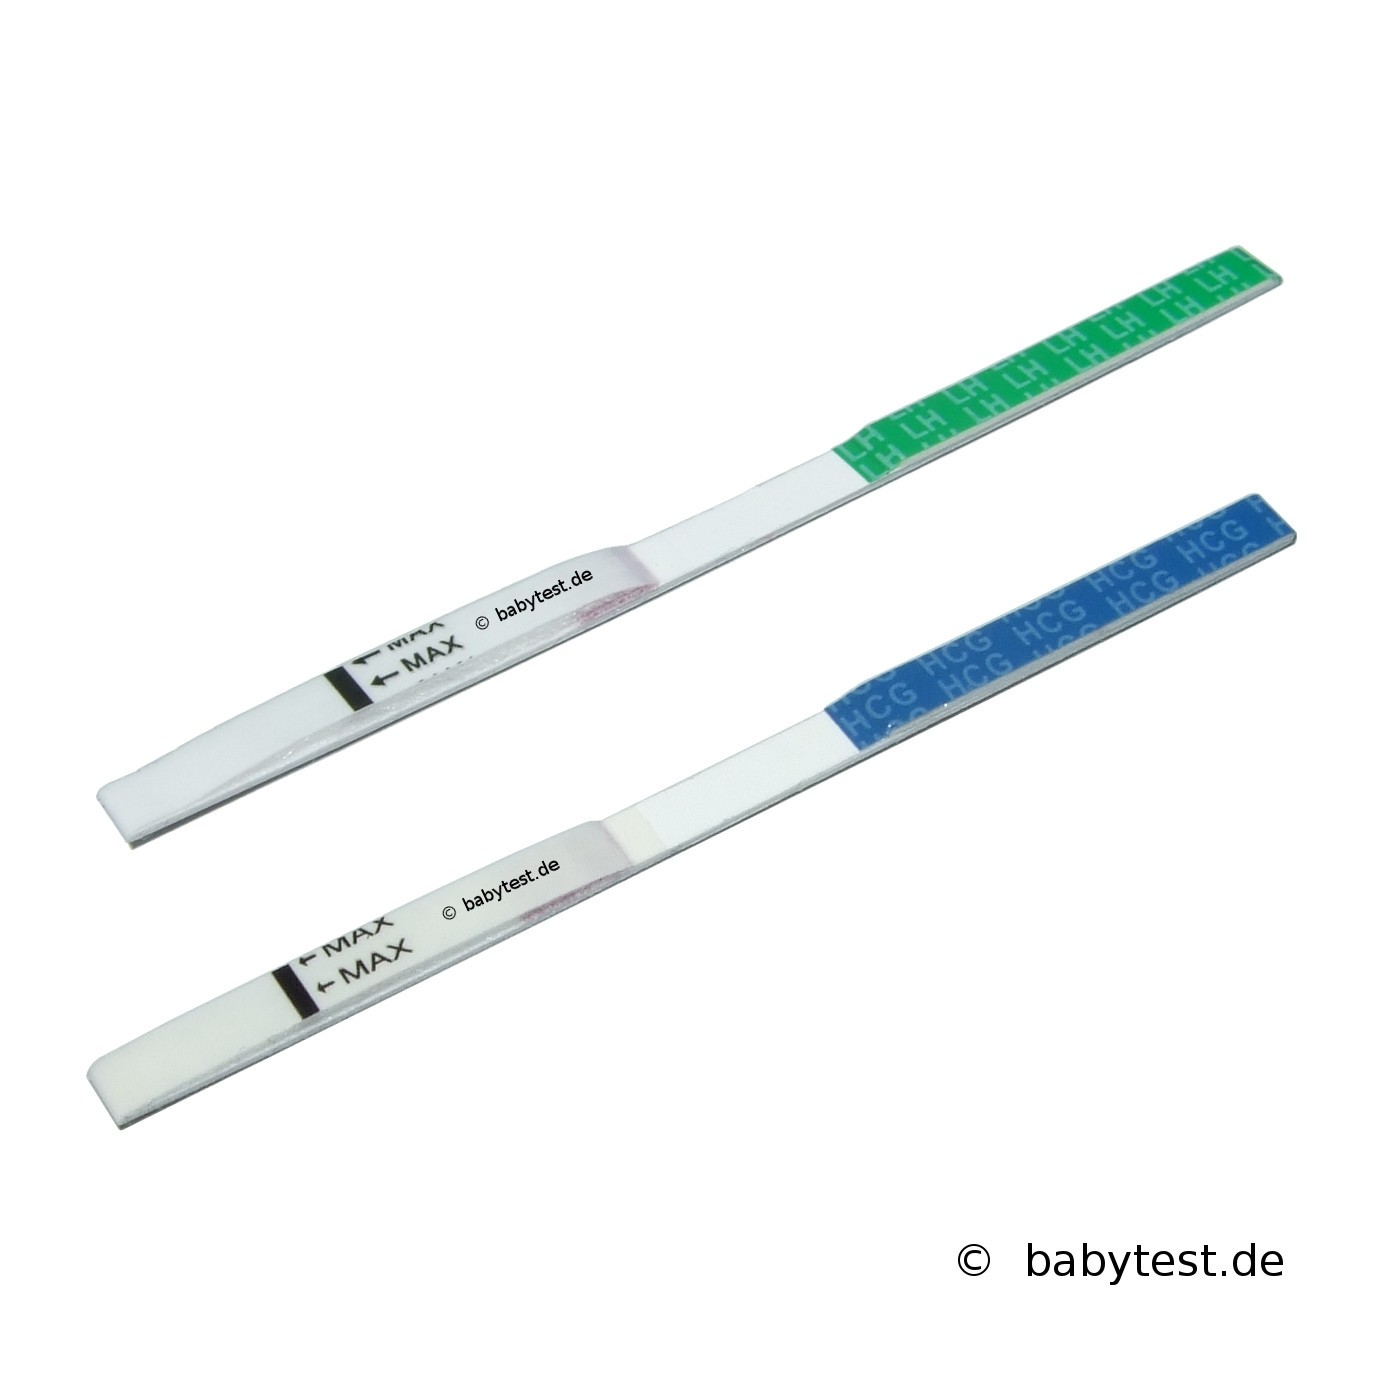 babytest-ovulationstest-40-schwangerschaftstest-20-kombination-ascimed